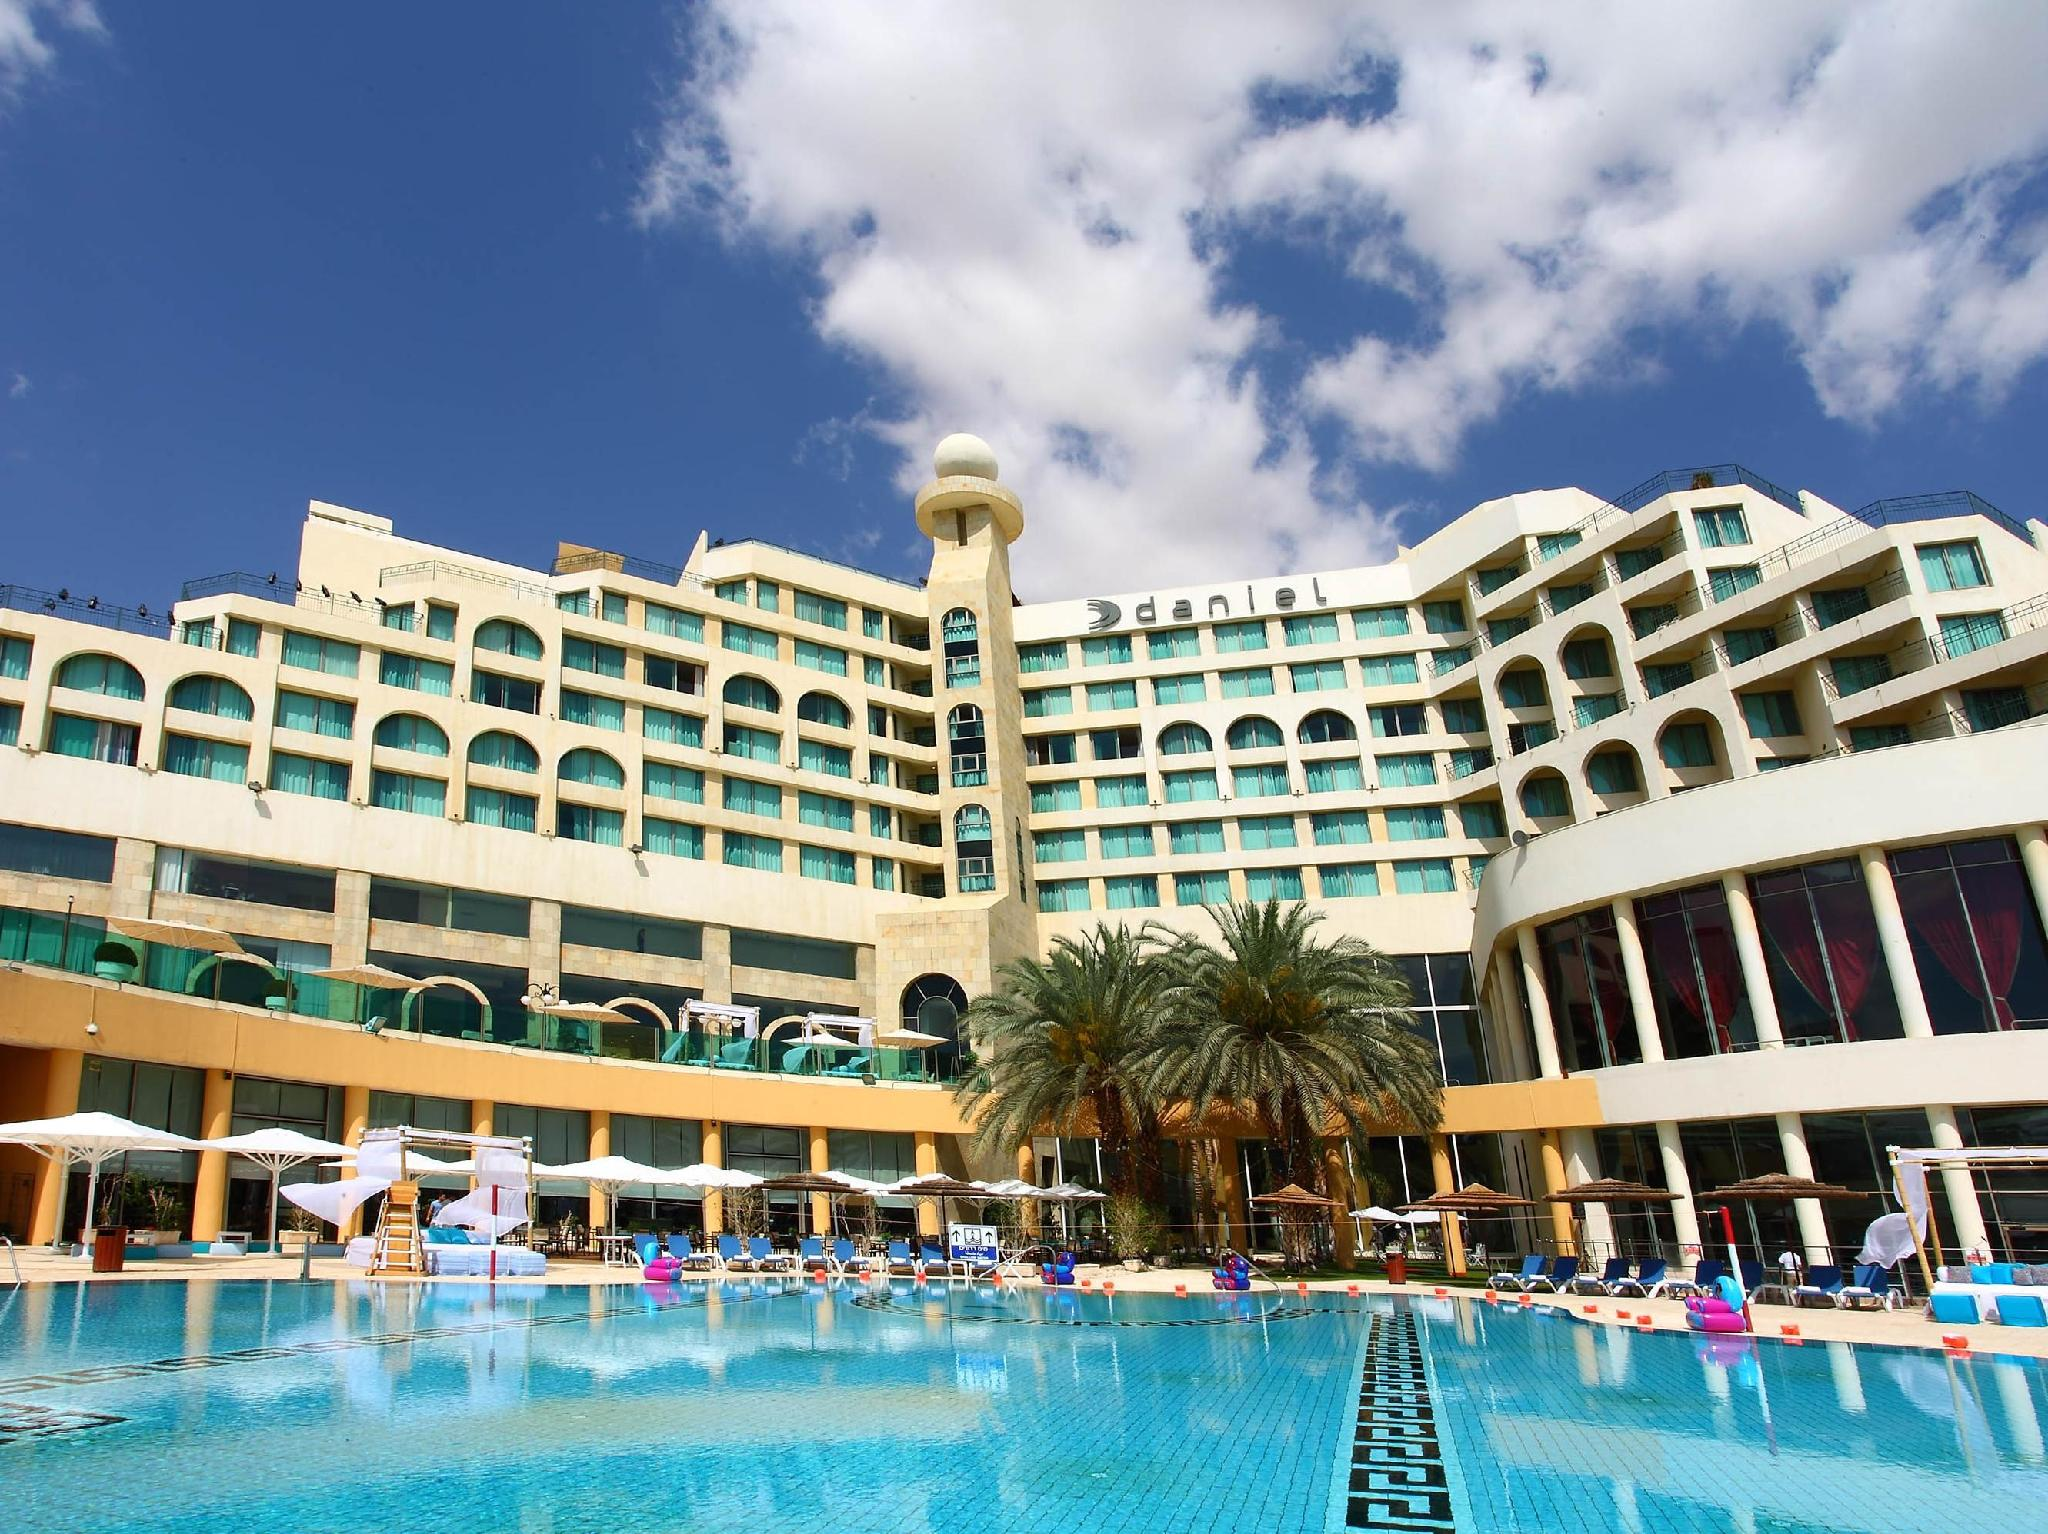 Daniel Dead Sea Hotel - Hotels and Accommodation in Israel, Middle East